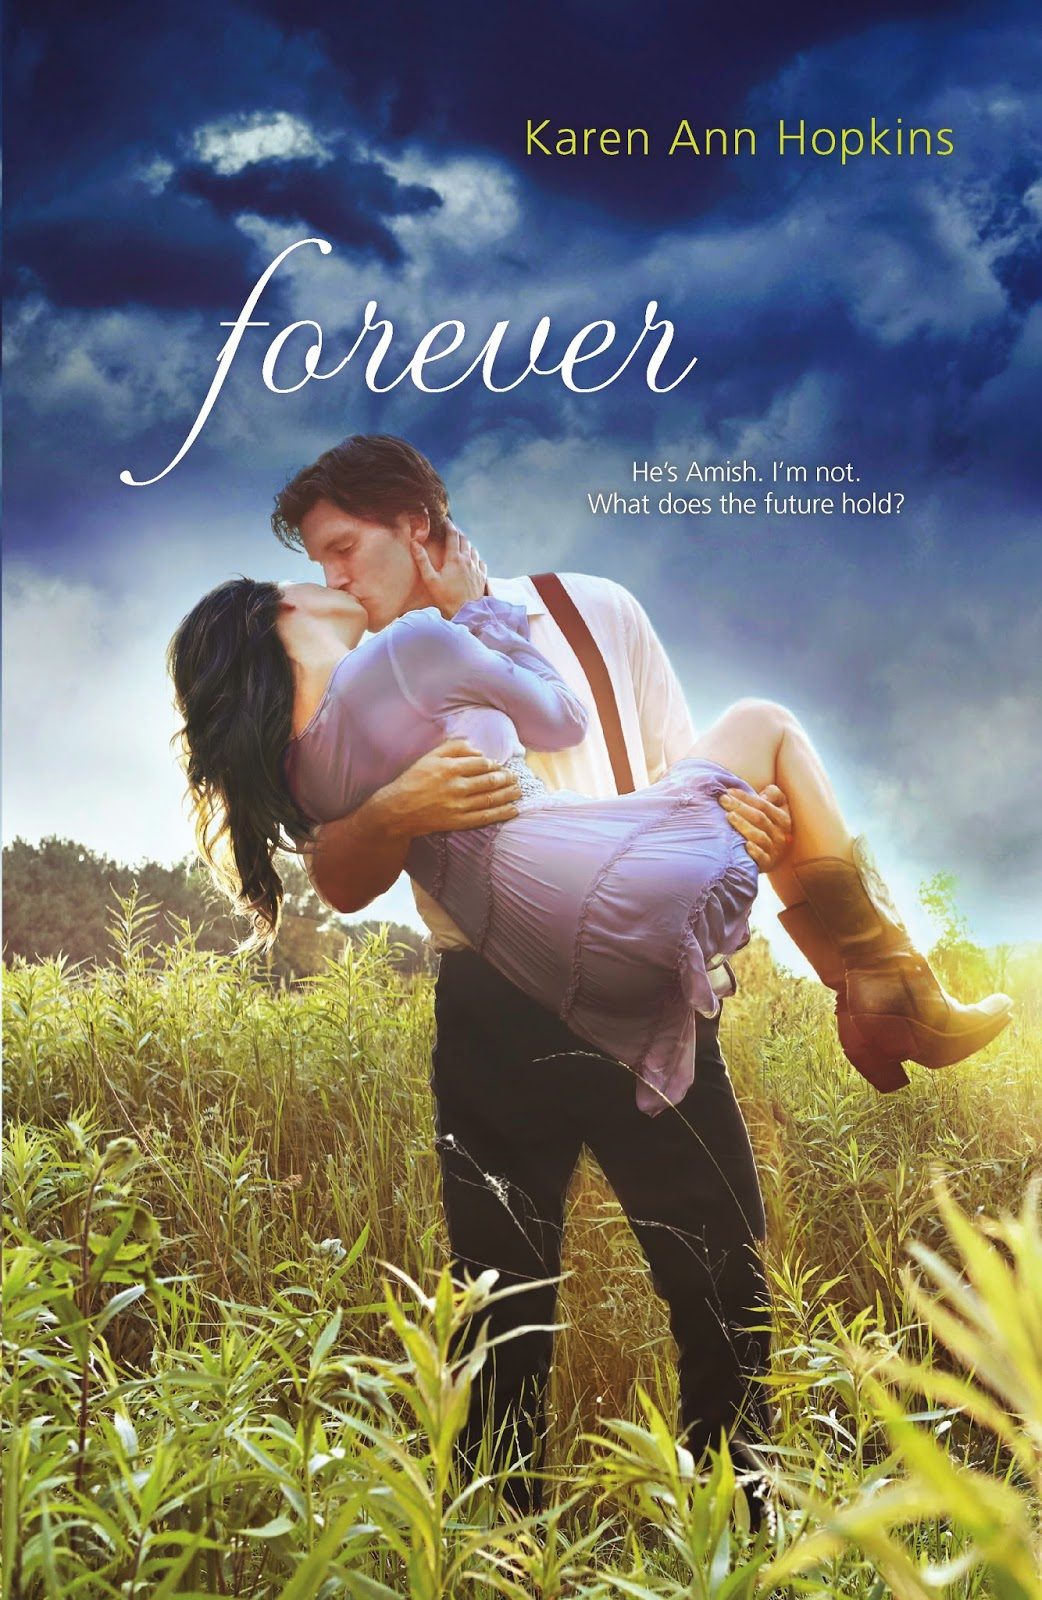 http://actinupwithbooks.blogspot.com/2014/01/review-forever-by-karen-ann-hopkins.html